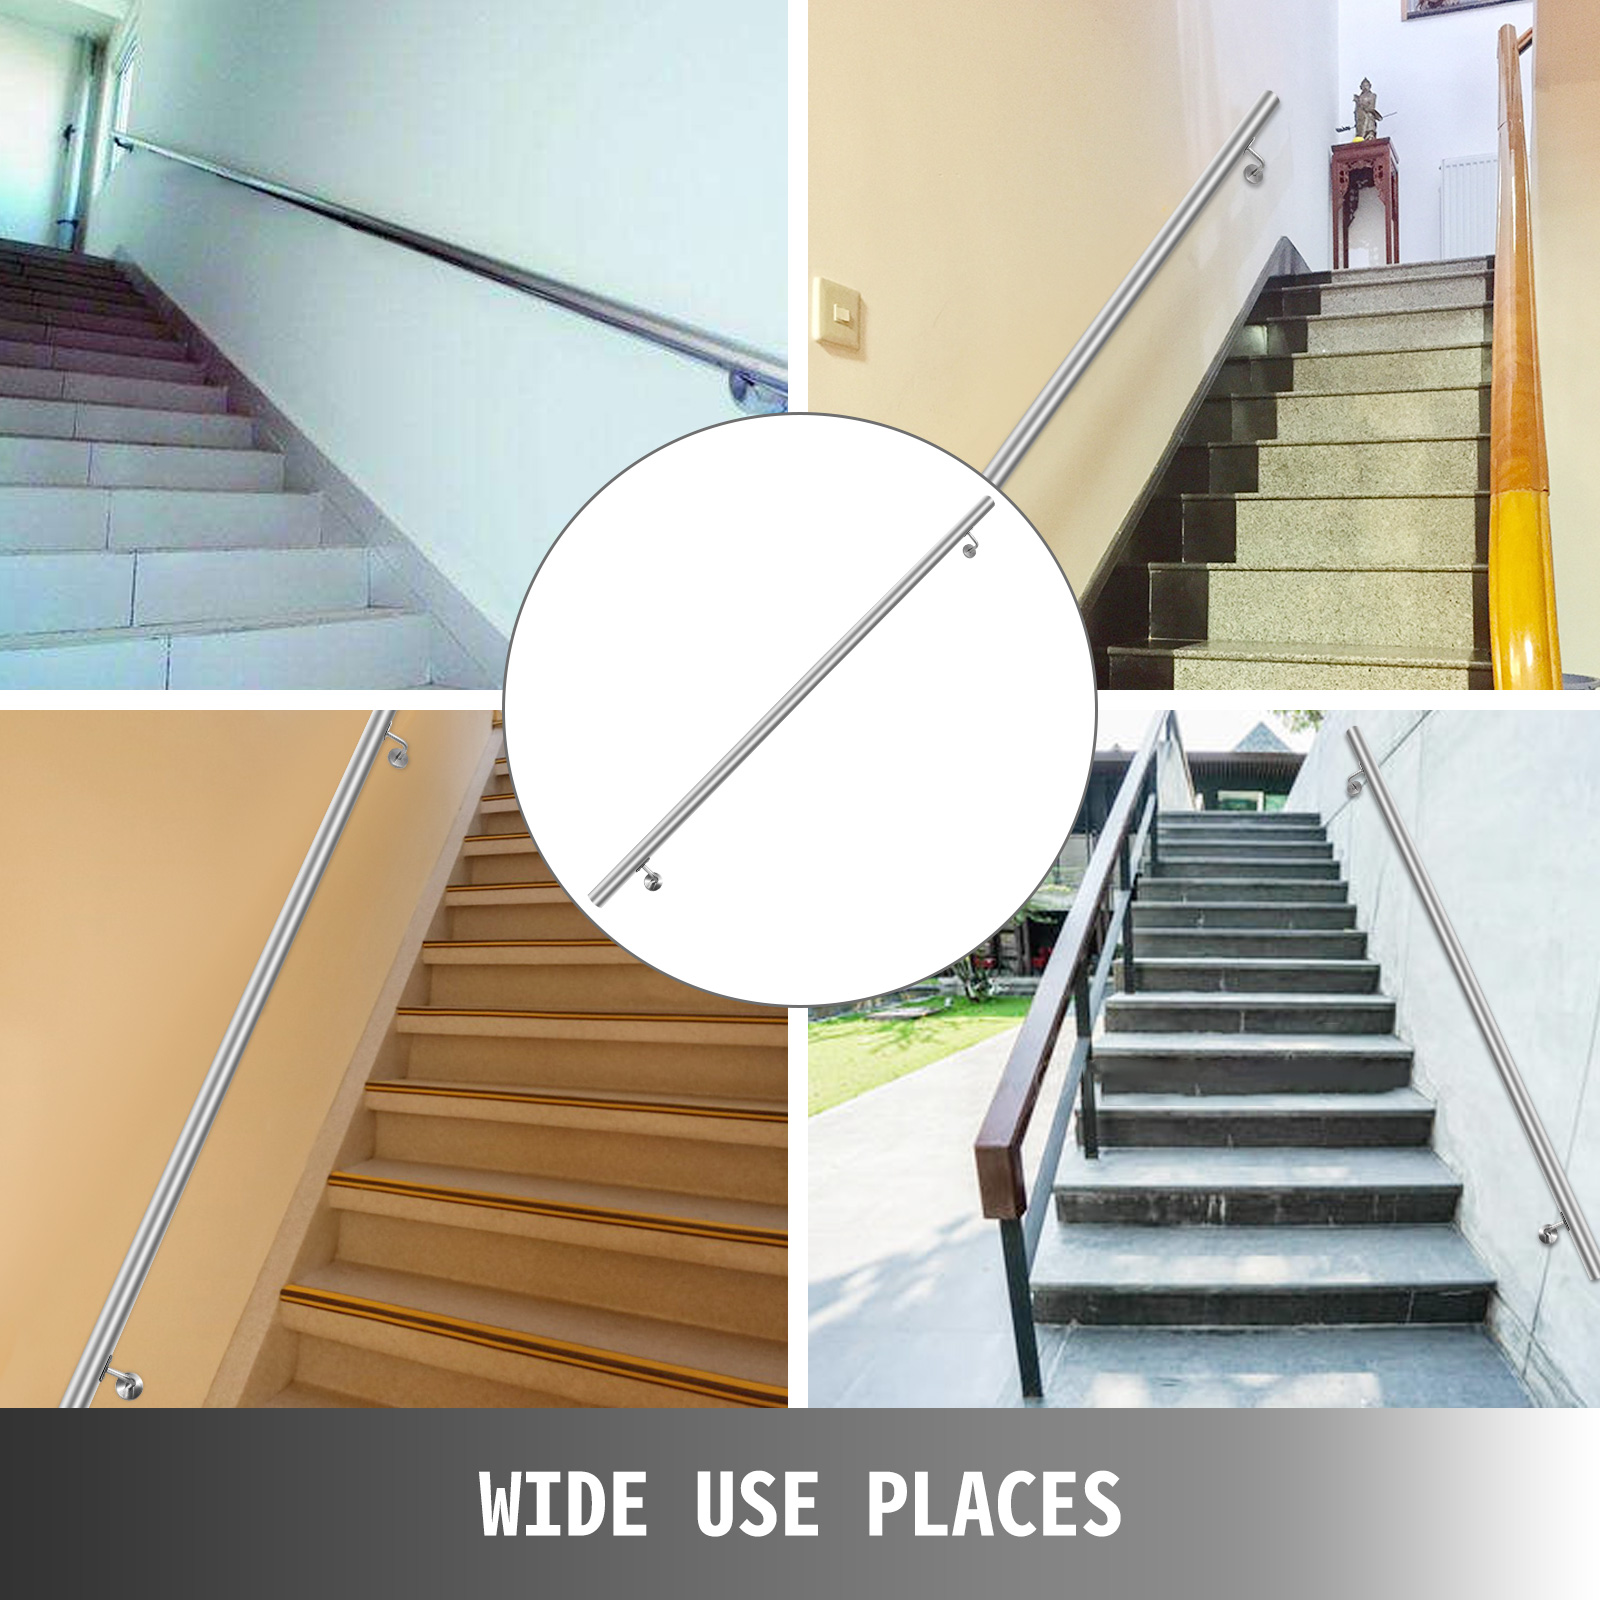 Stair-Handrail-Stair-Rail-3-10ft-Stainless-Steel-Handrail-for-Stairs-200lbs-Load thumbnail 66